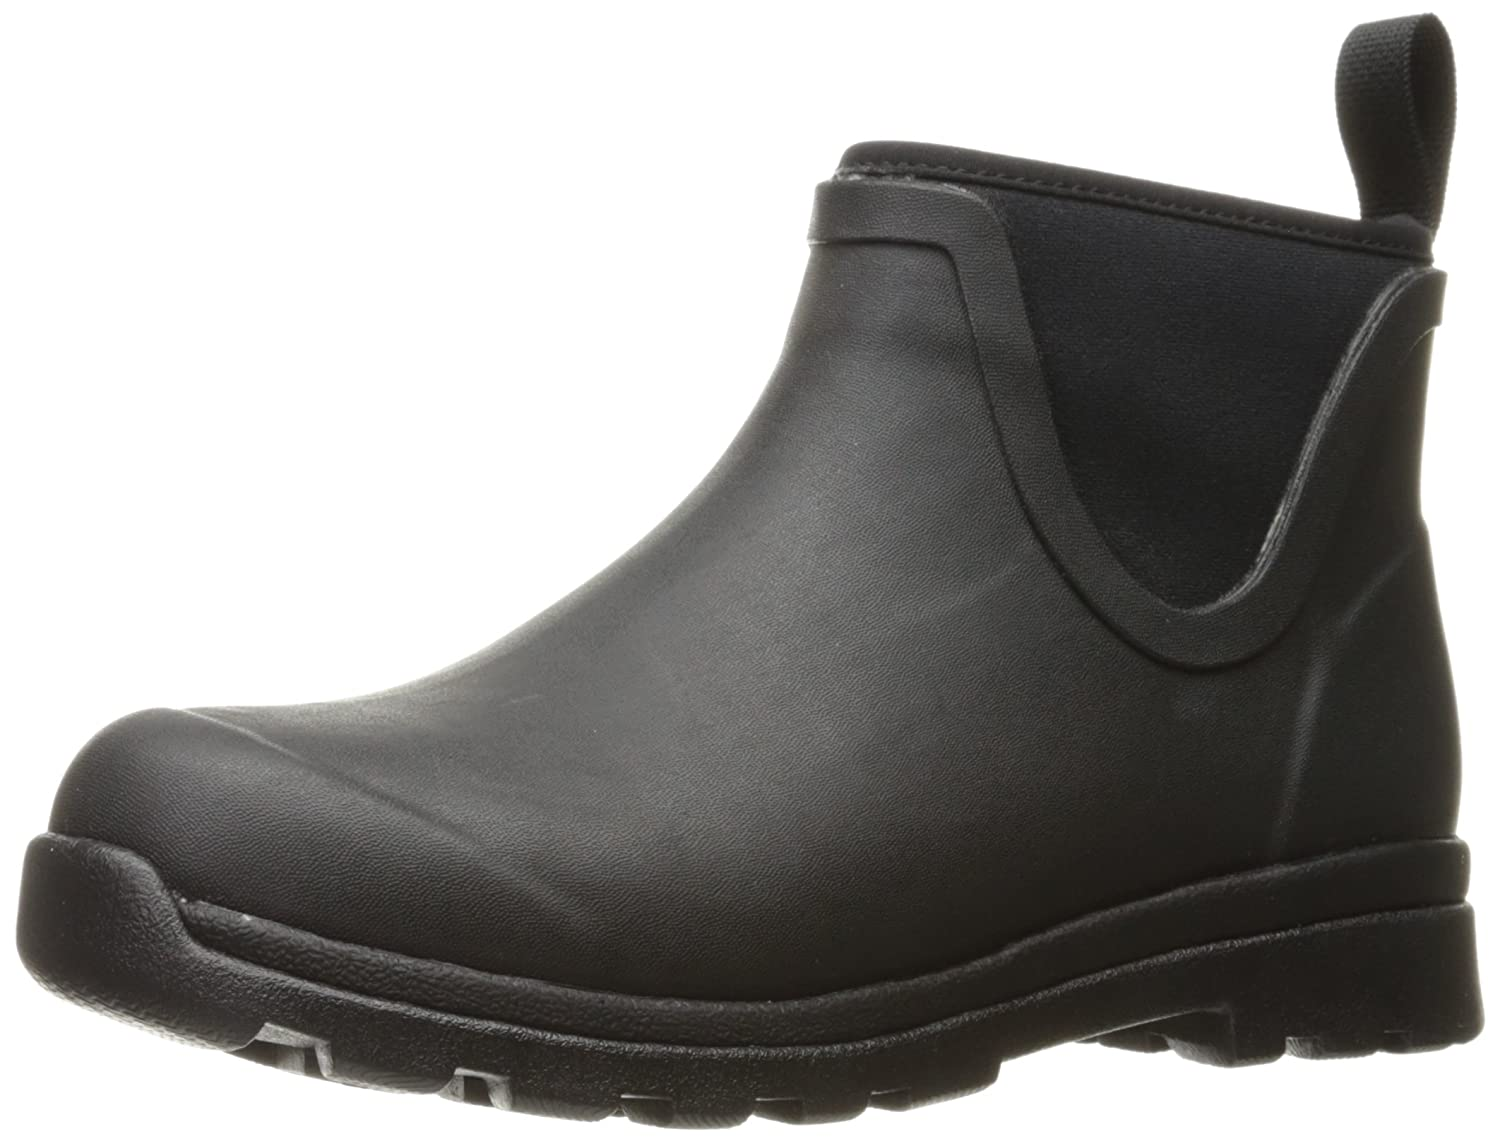 Muck Boot Women's Cambridge Ankle Snow B01NBU8VLU 6 B(M) US|Black